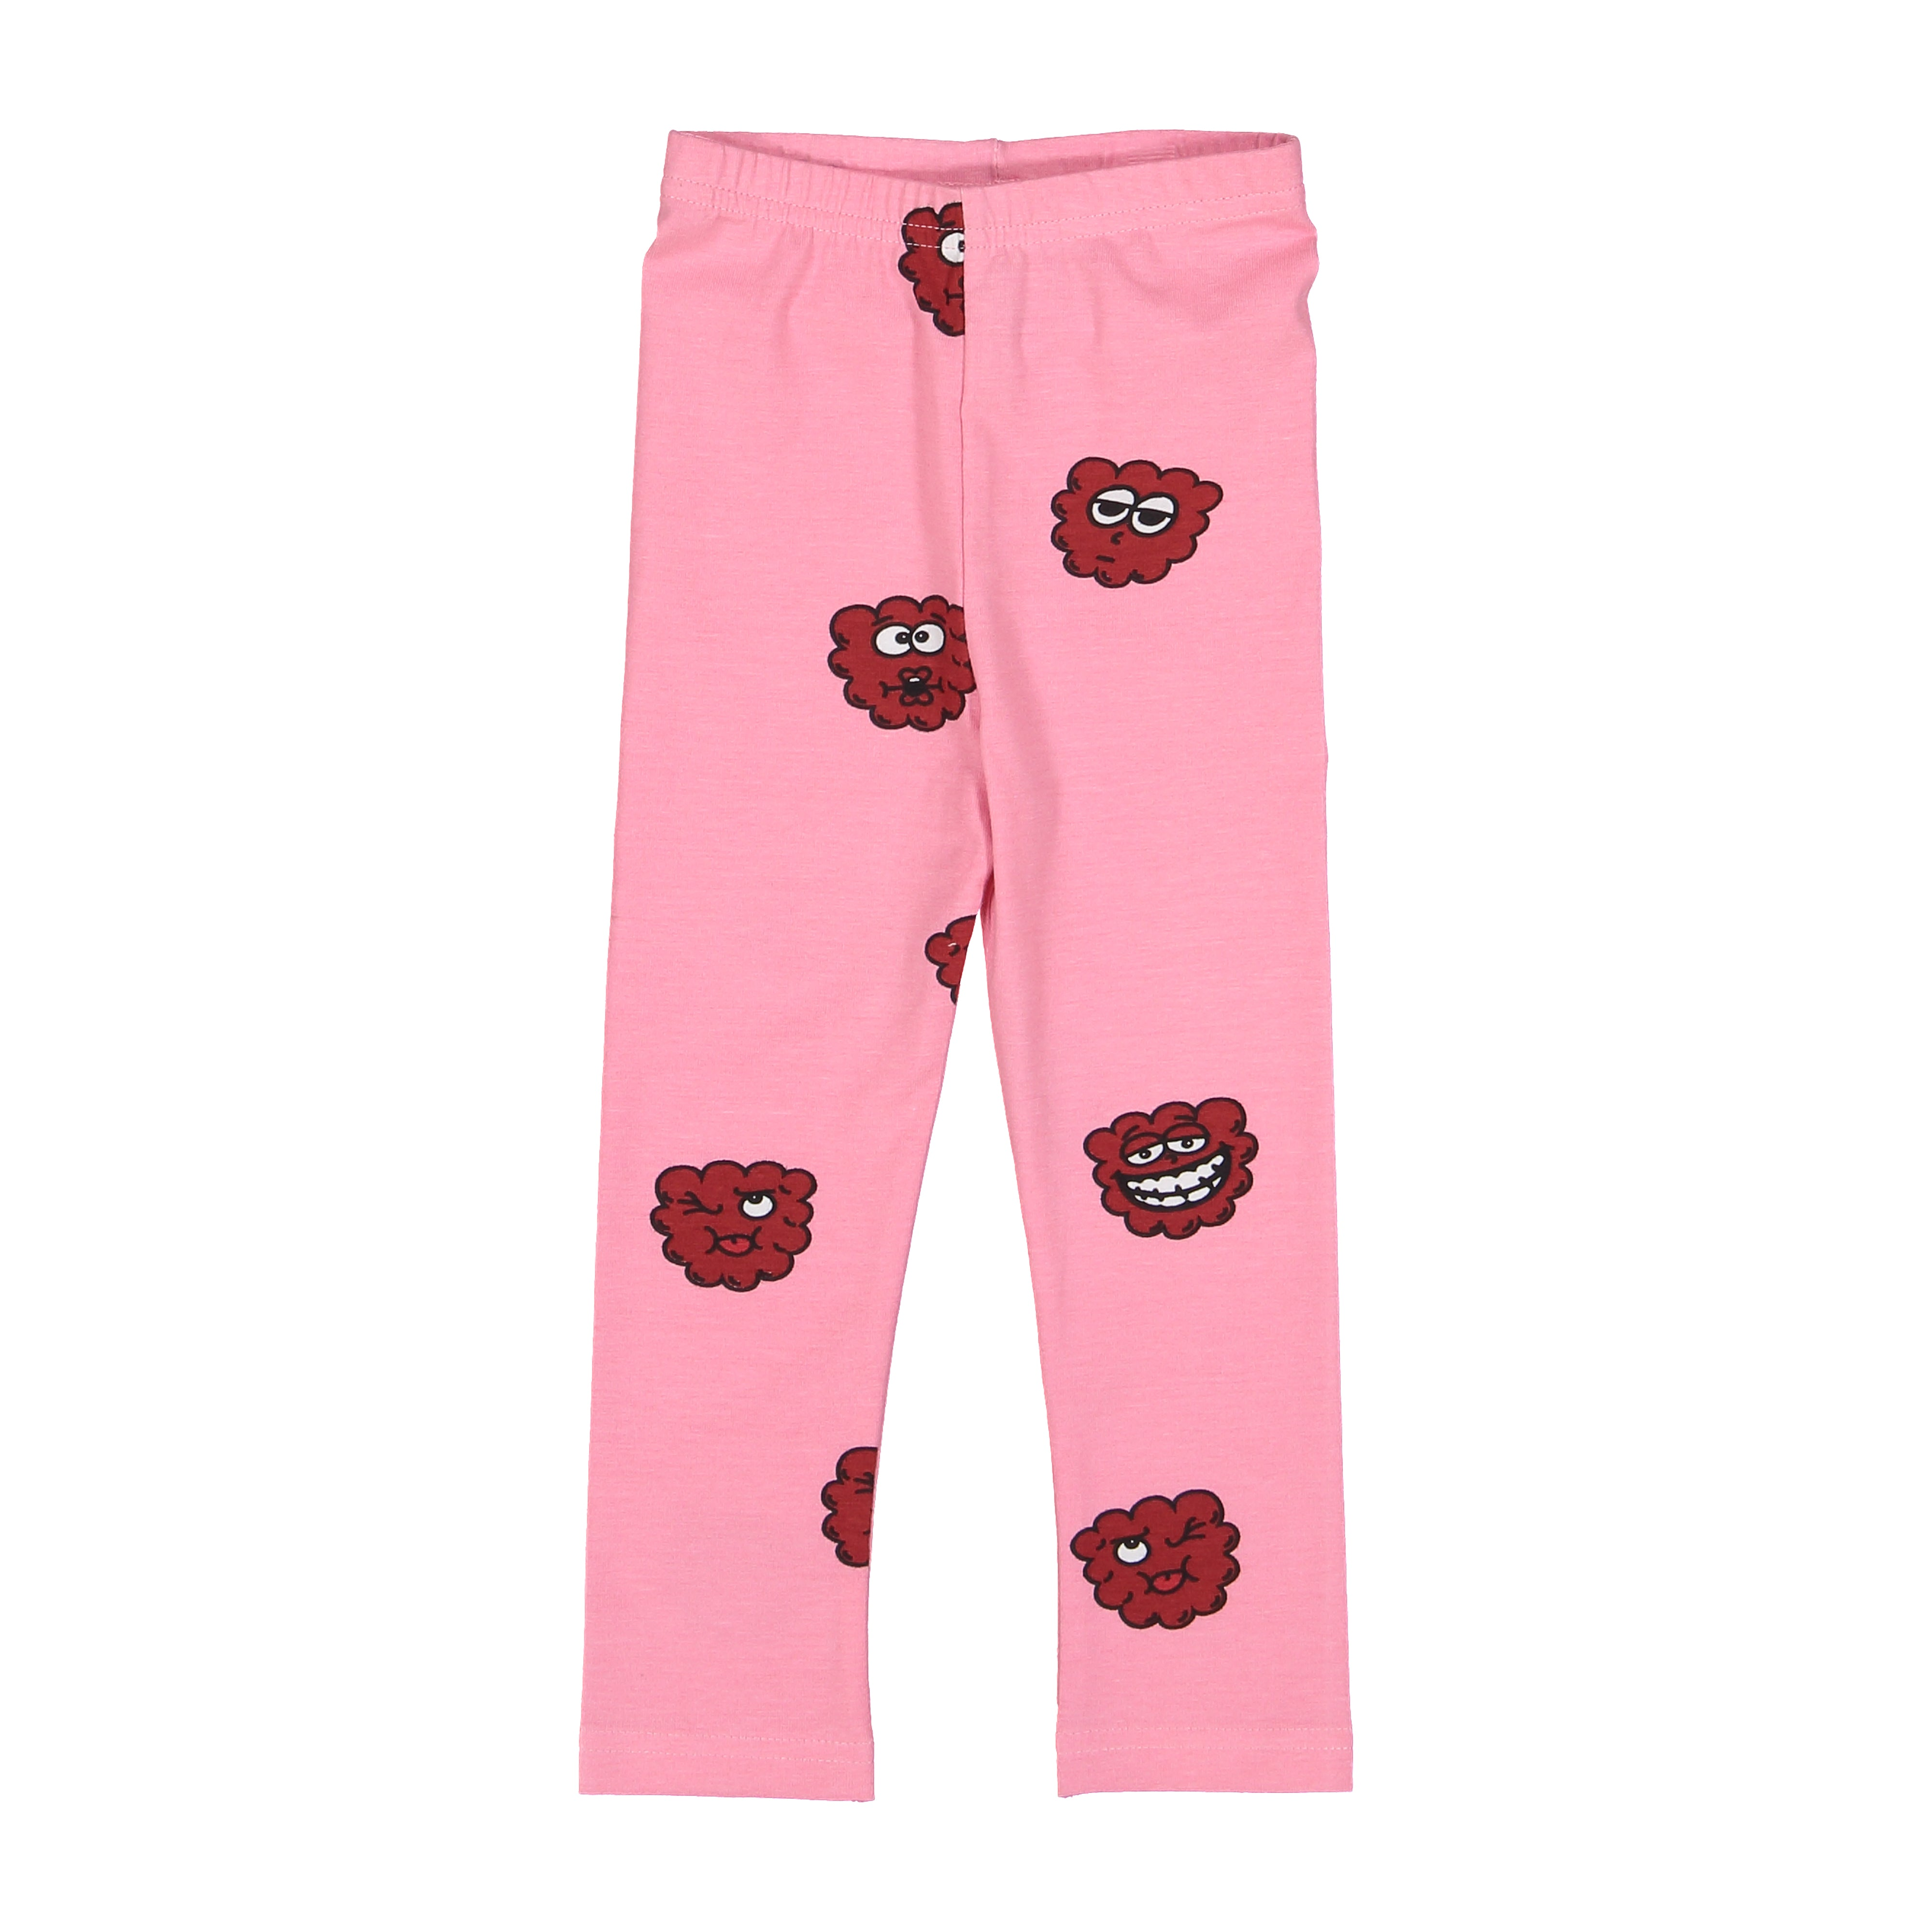 Raspberry Legging - Pink